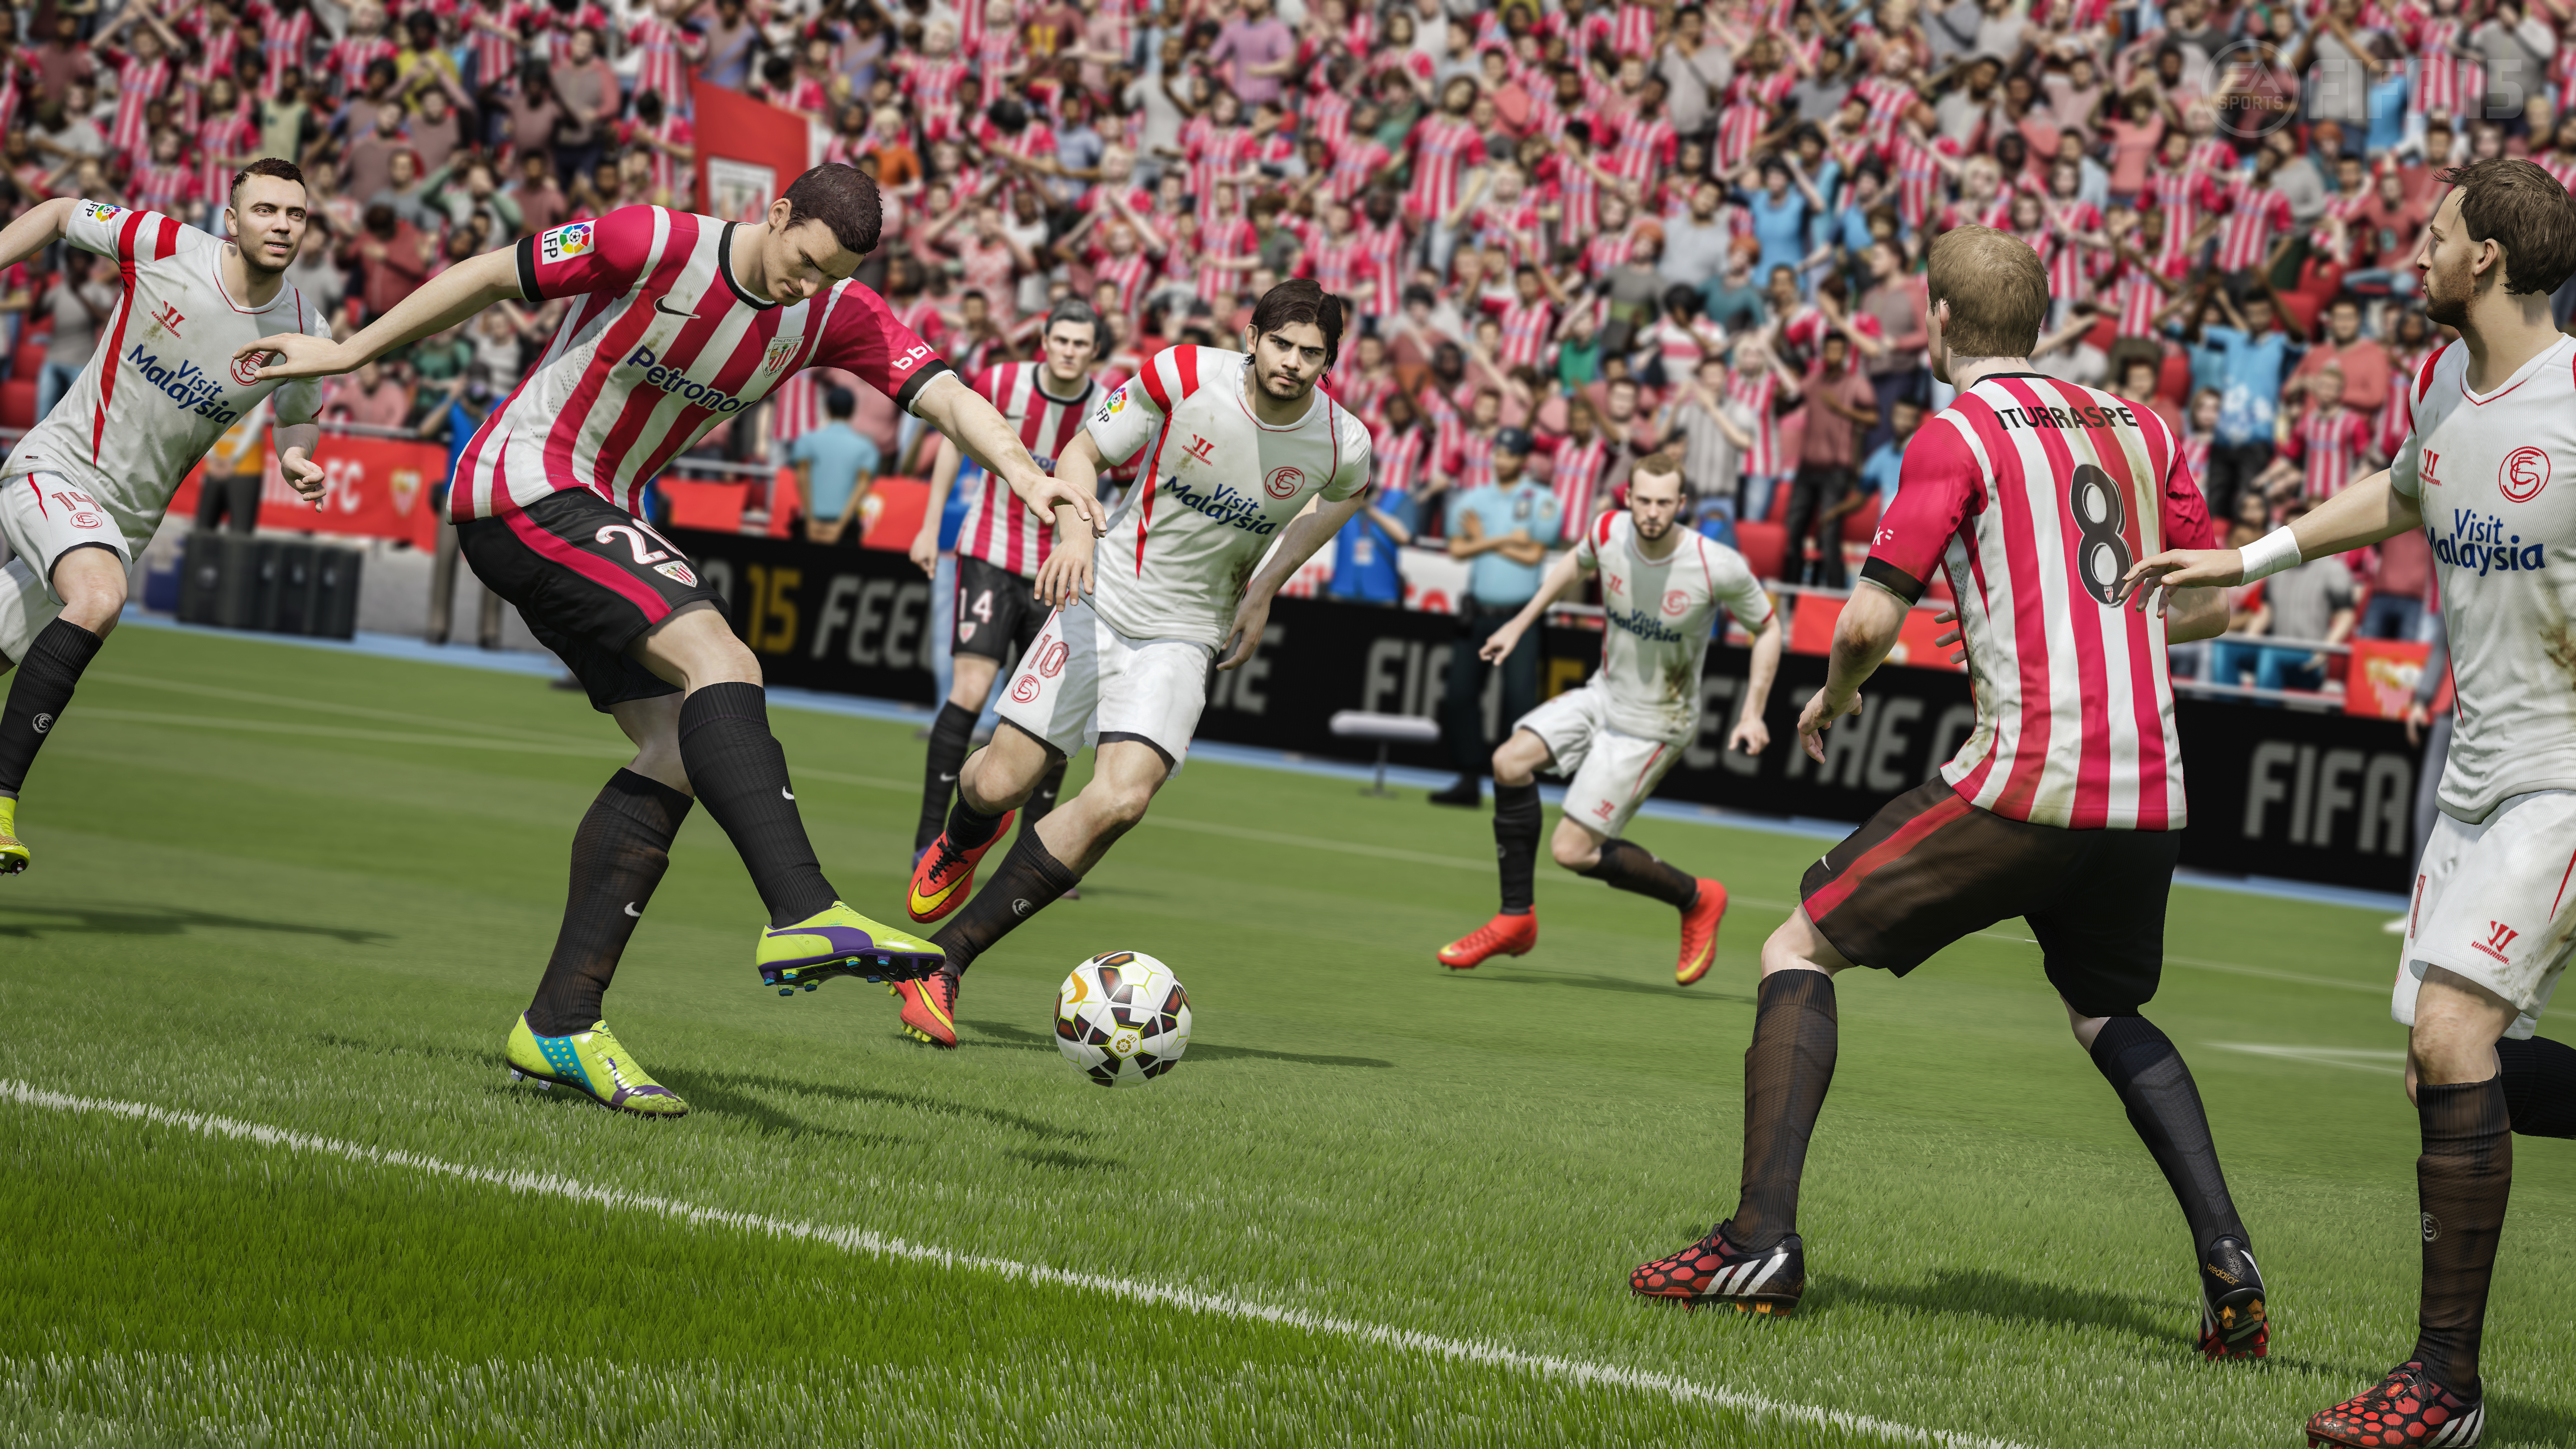 FIFA 14 sold just as well last year, but FIFA 15 stands up to a tough competitor during its launch week.